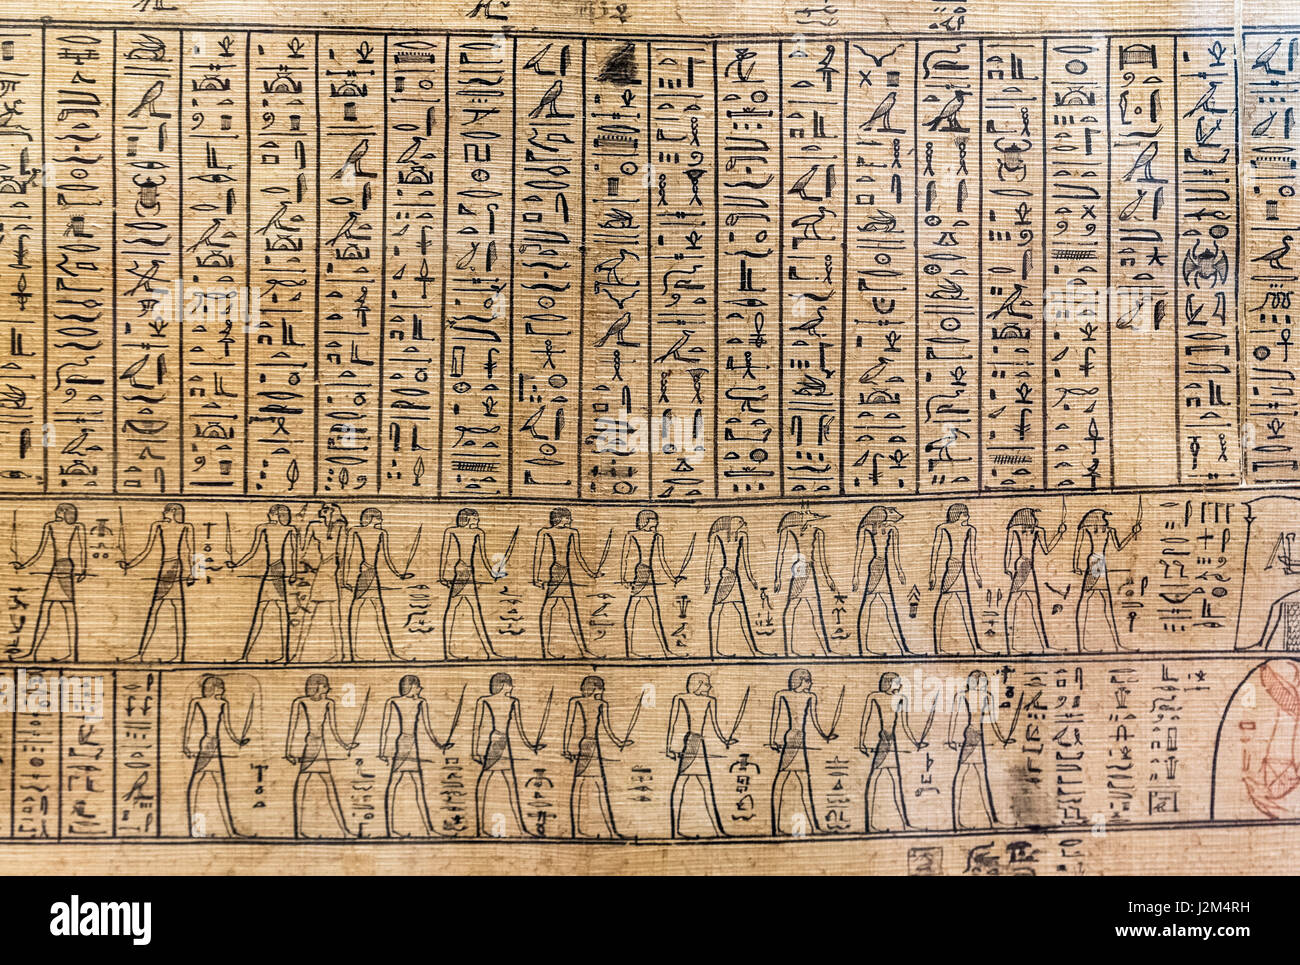 Hieroglyphics. Egyptian hieroglyphs on a portion of the Jumilhac Papyrus, dated from the late Ptolemaic or early - Stock Image